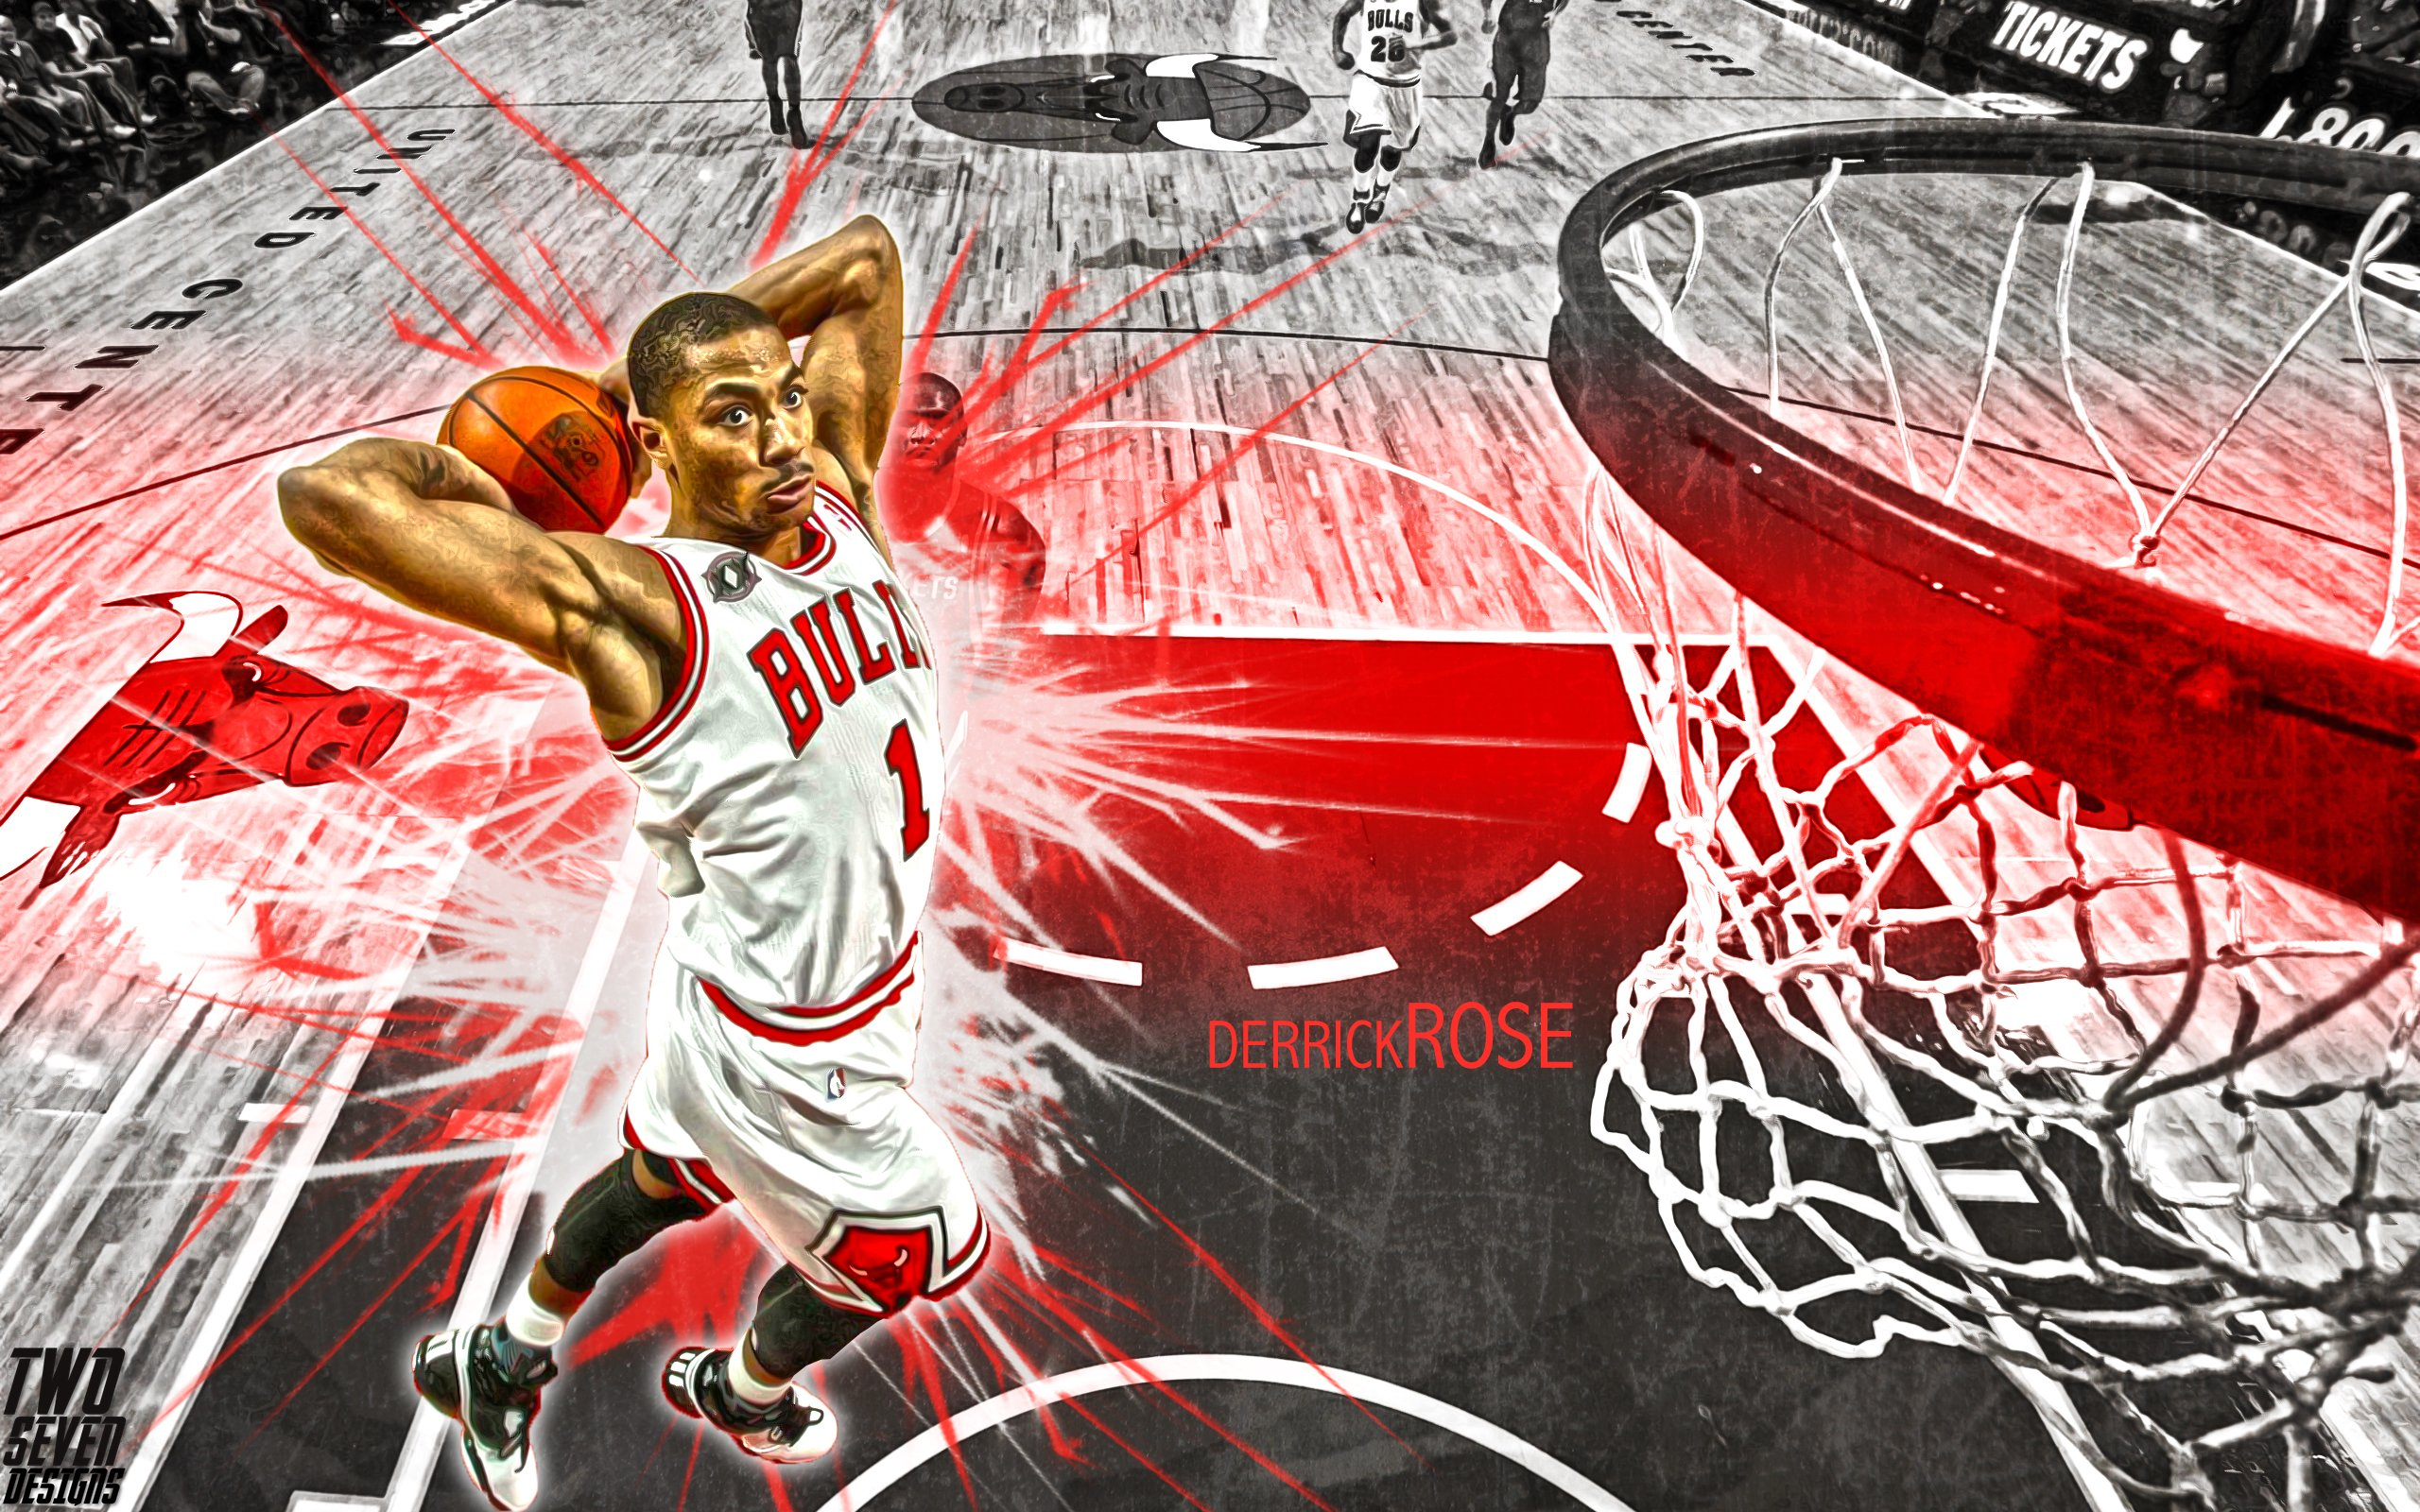 Derrick Rose Wallpapers High Resolution and Quality Download 2560x1600